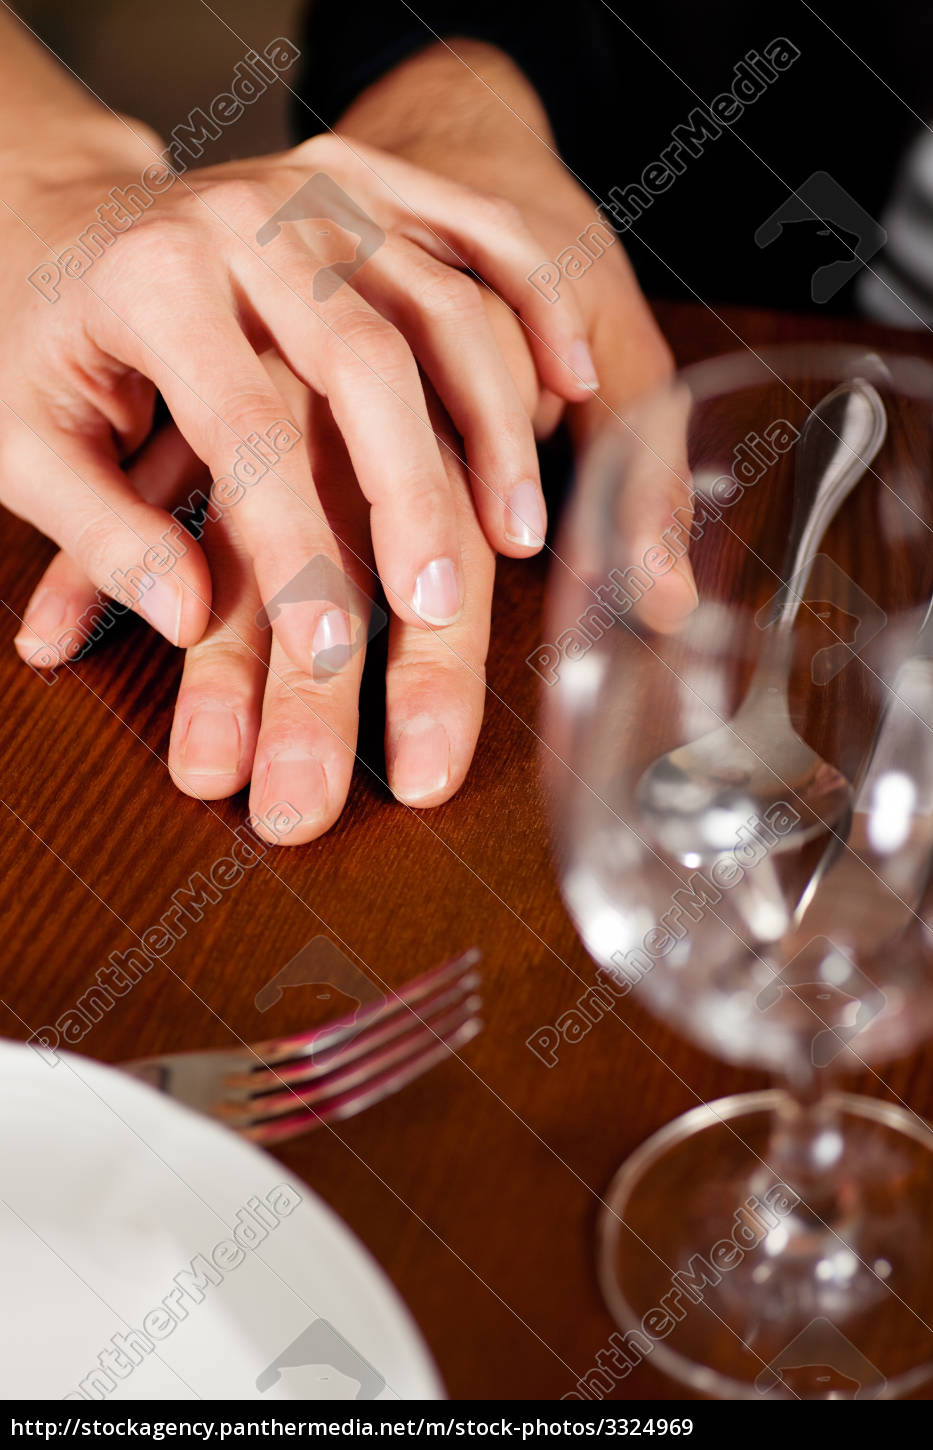 Royalty free image 3324969 - couple hällt hands on table